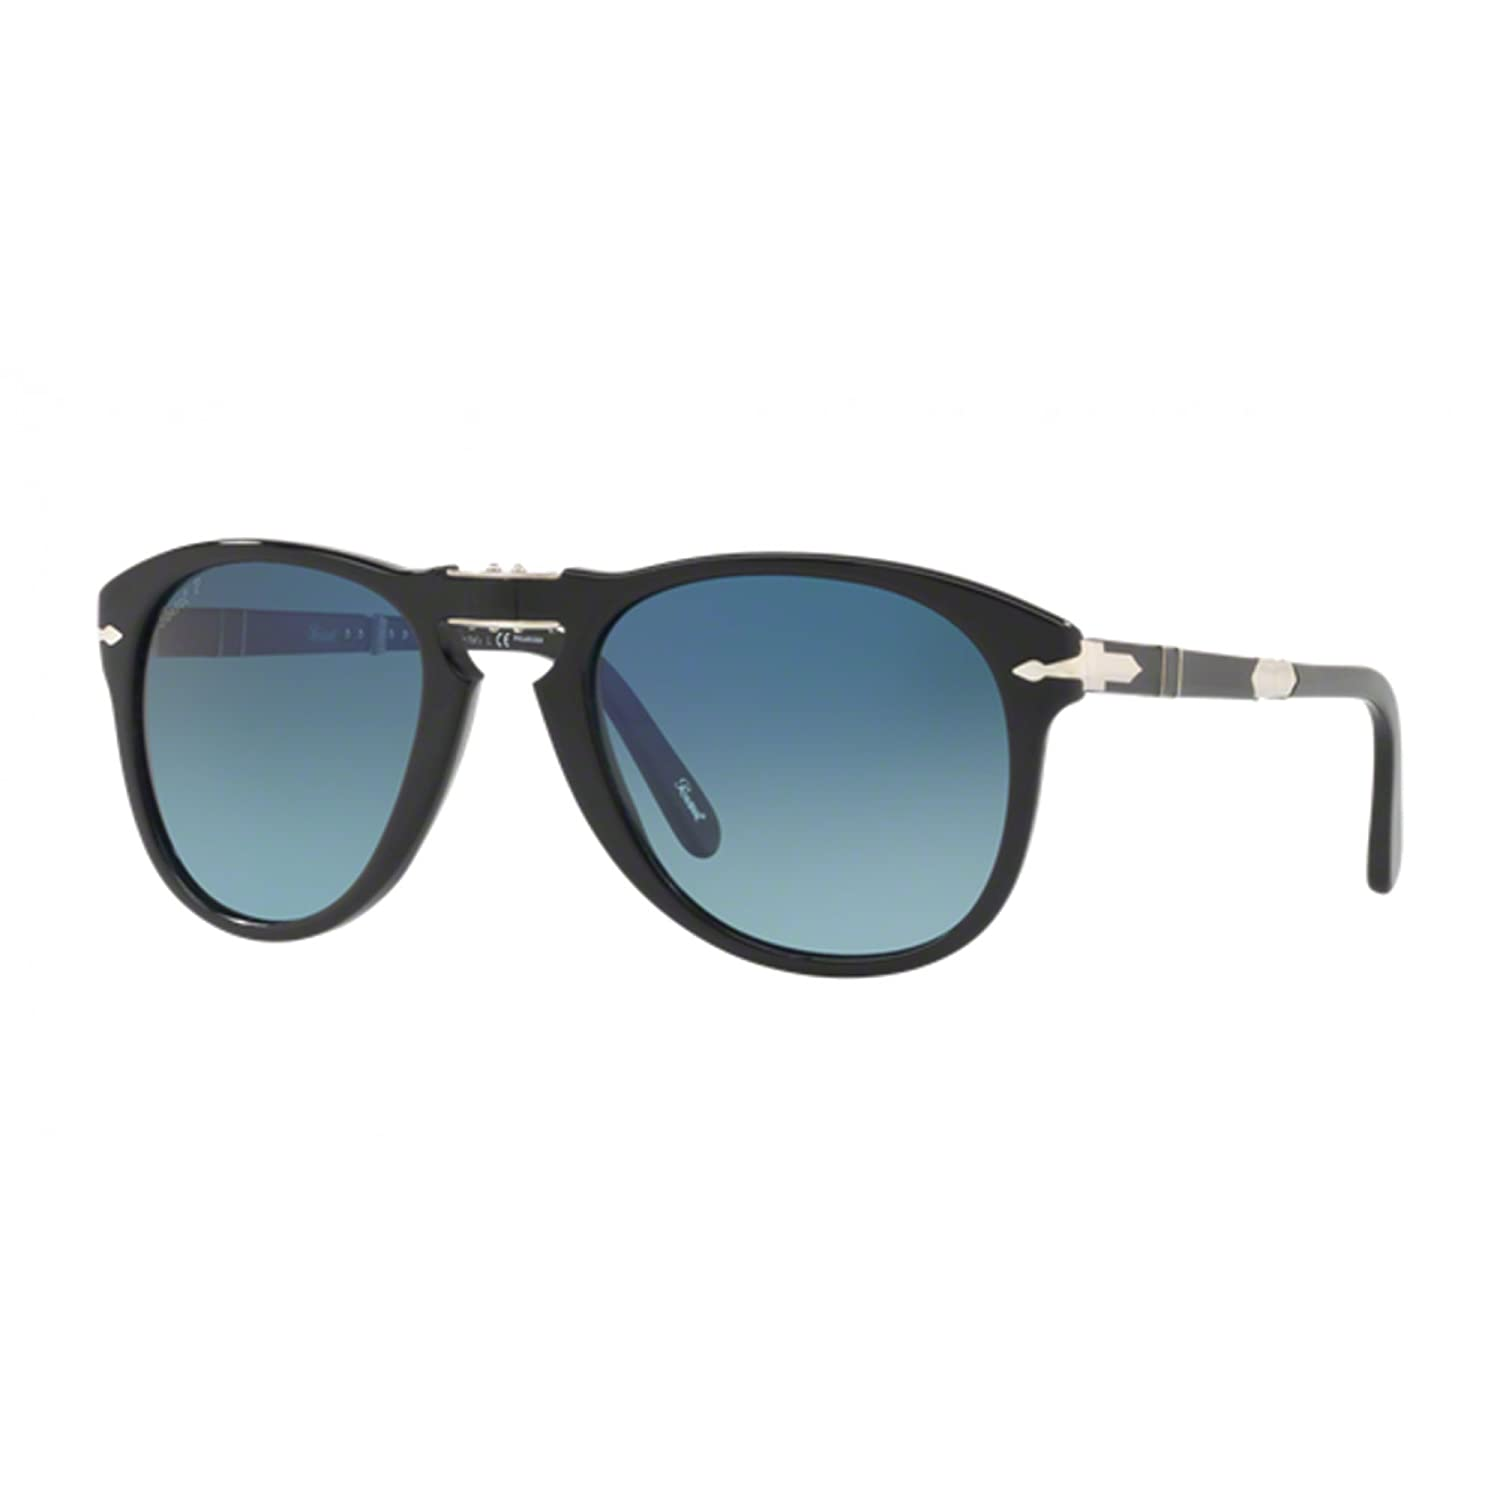 012774aa93 Amazon.com  Persol Steve McQueen Limited Edition PO 0714SM Black Blue  Shaded 54 21 140 Men Sunglasses  Clothing